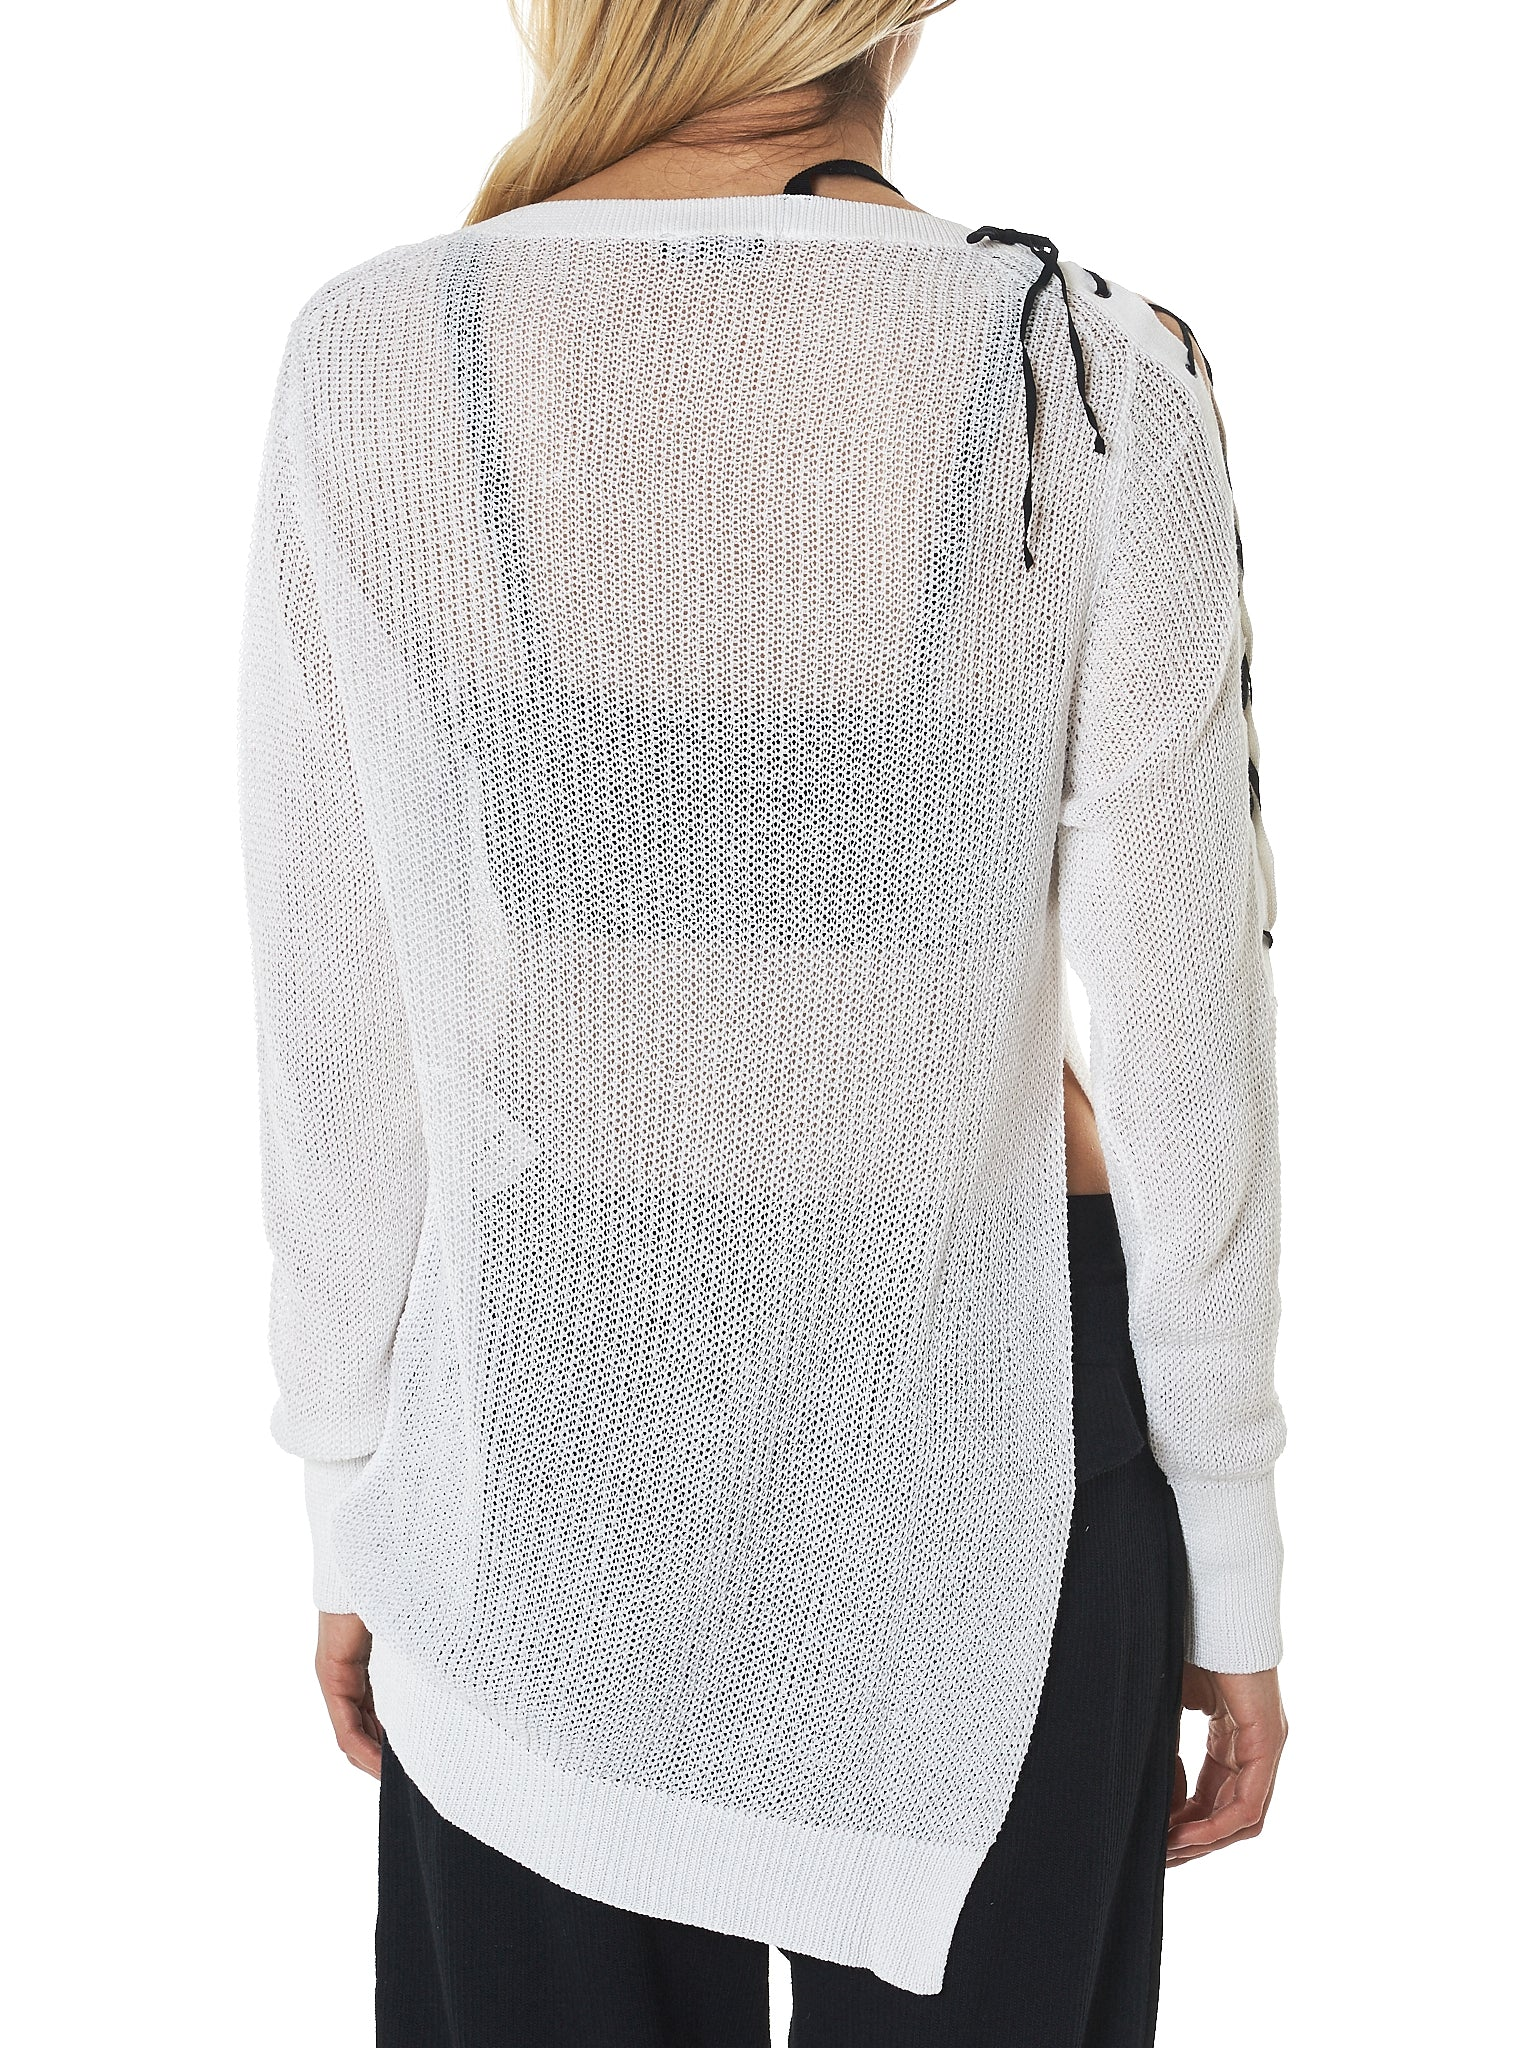 Ann Demeulemeester Lace-Up Cardigan - Hlorenzo Back